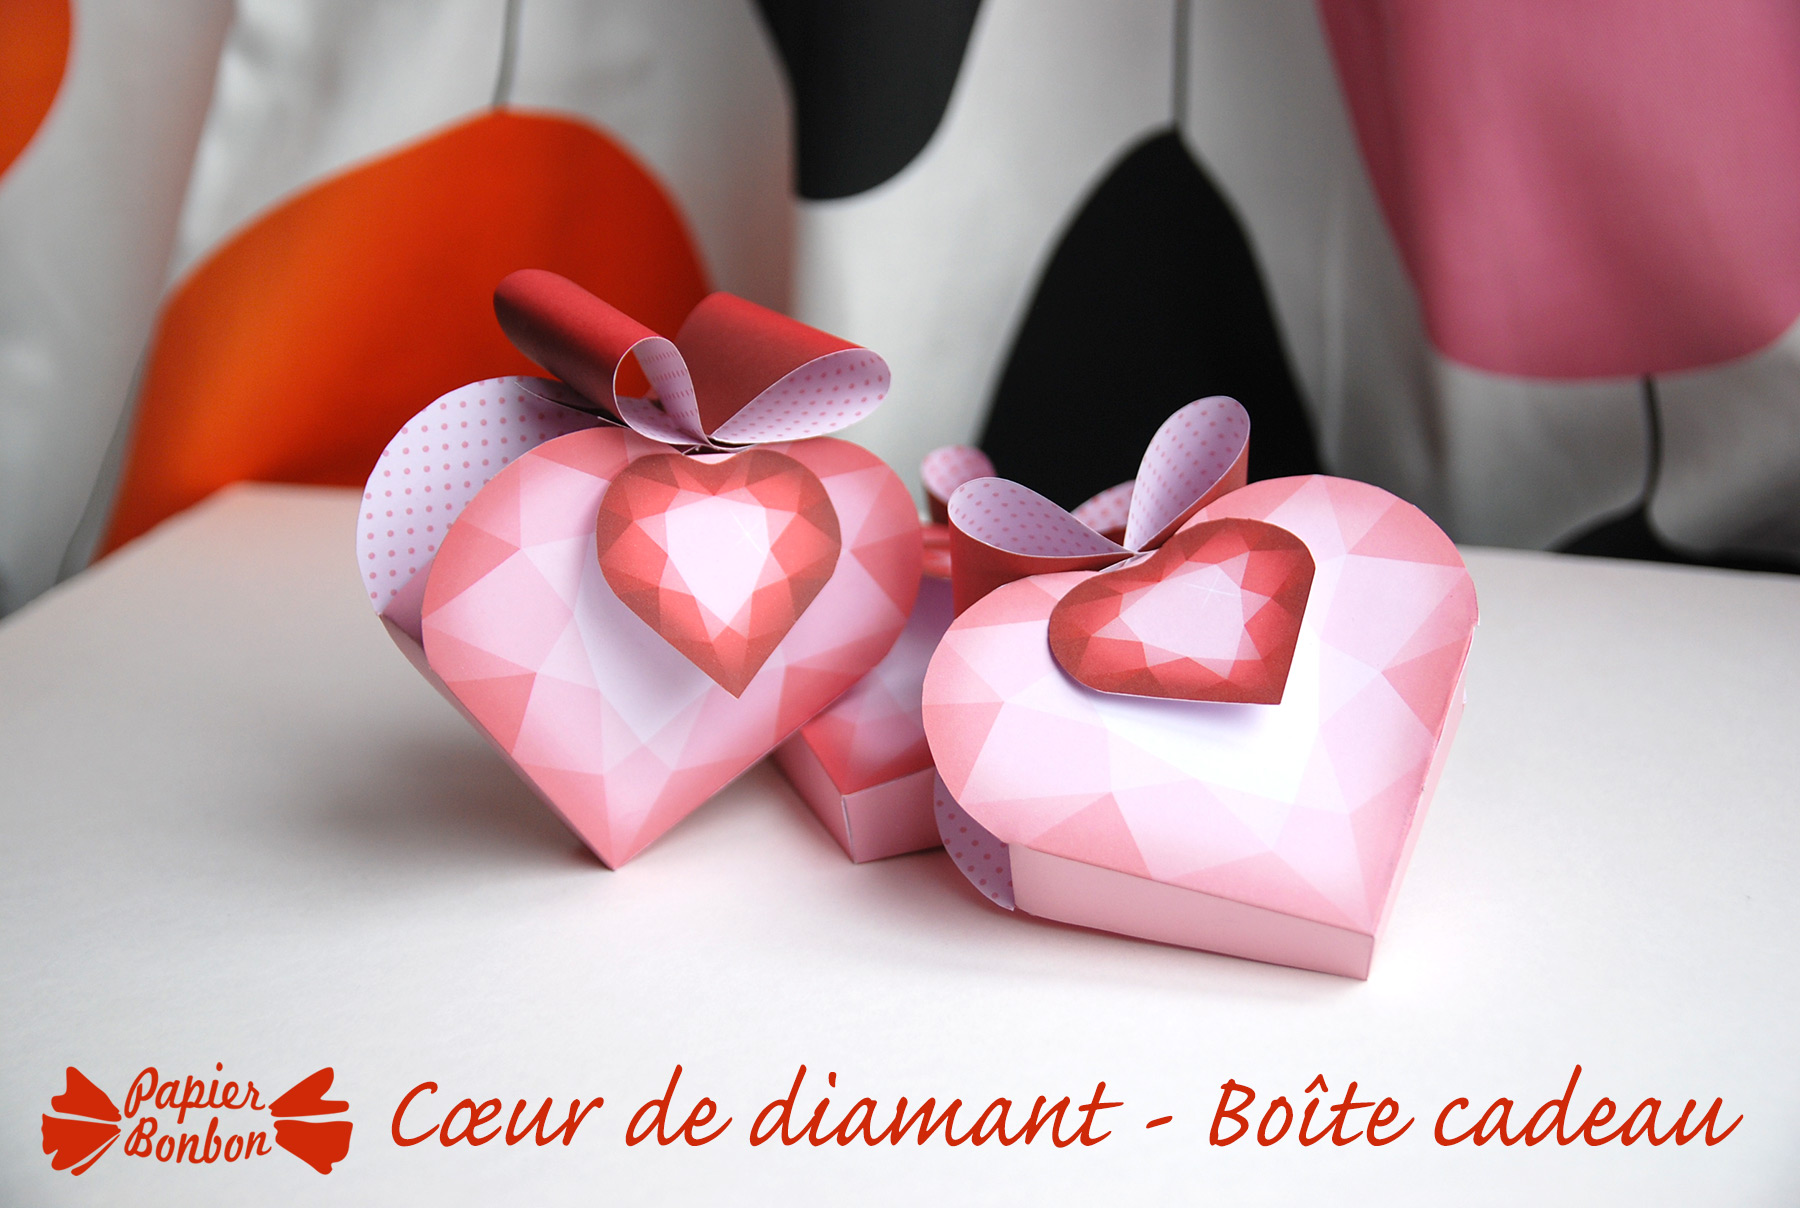 bo te cadeau c ur de diamant saint valentin papier bonbon. Black Bedroom Furniture Sets. Home Design Ideas